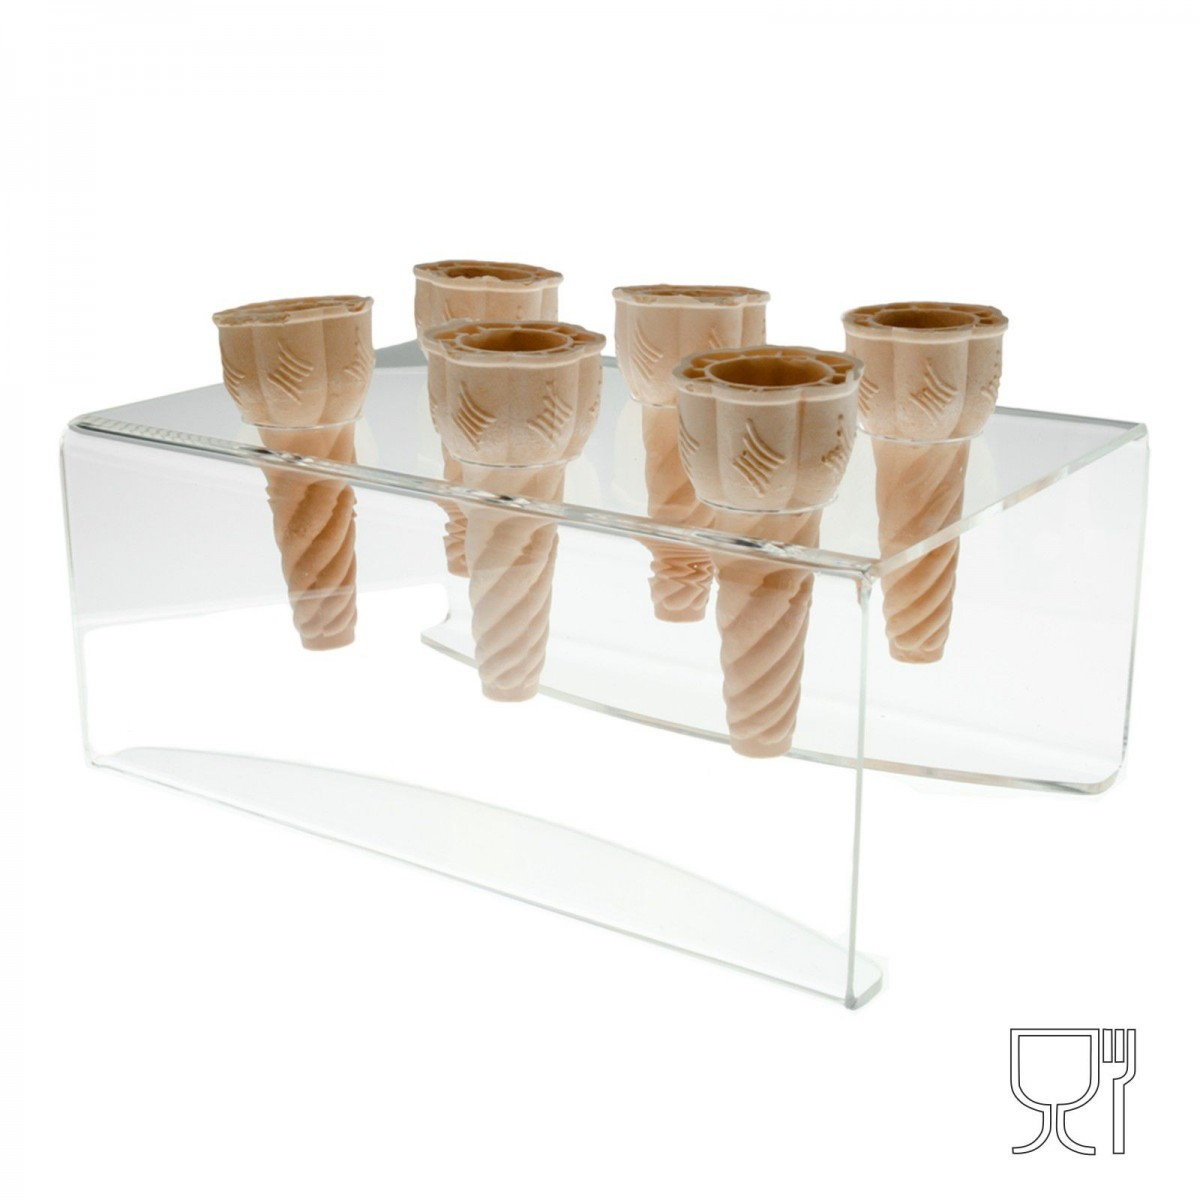 Clear Acrylic ice-cream cone holder – 6 Cone Capcity